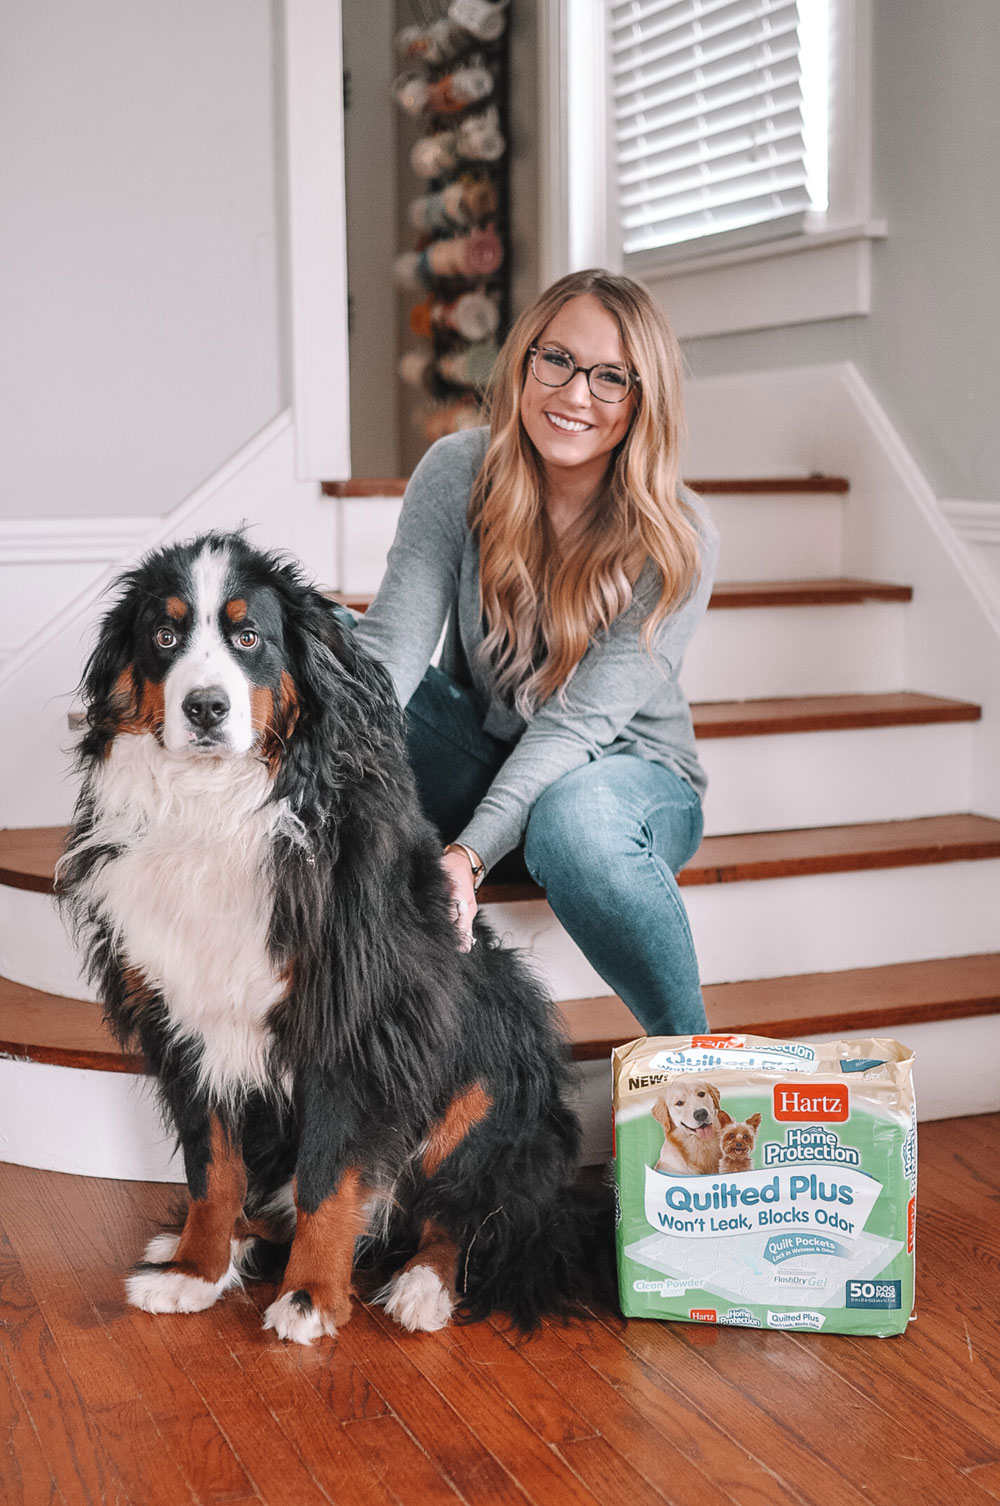 Amanda Martin of Amanda's OK and her Bernese Mountain Dog share how they use Hartz Dog Pads at home